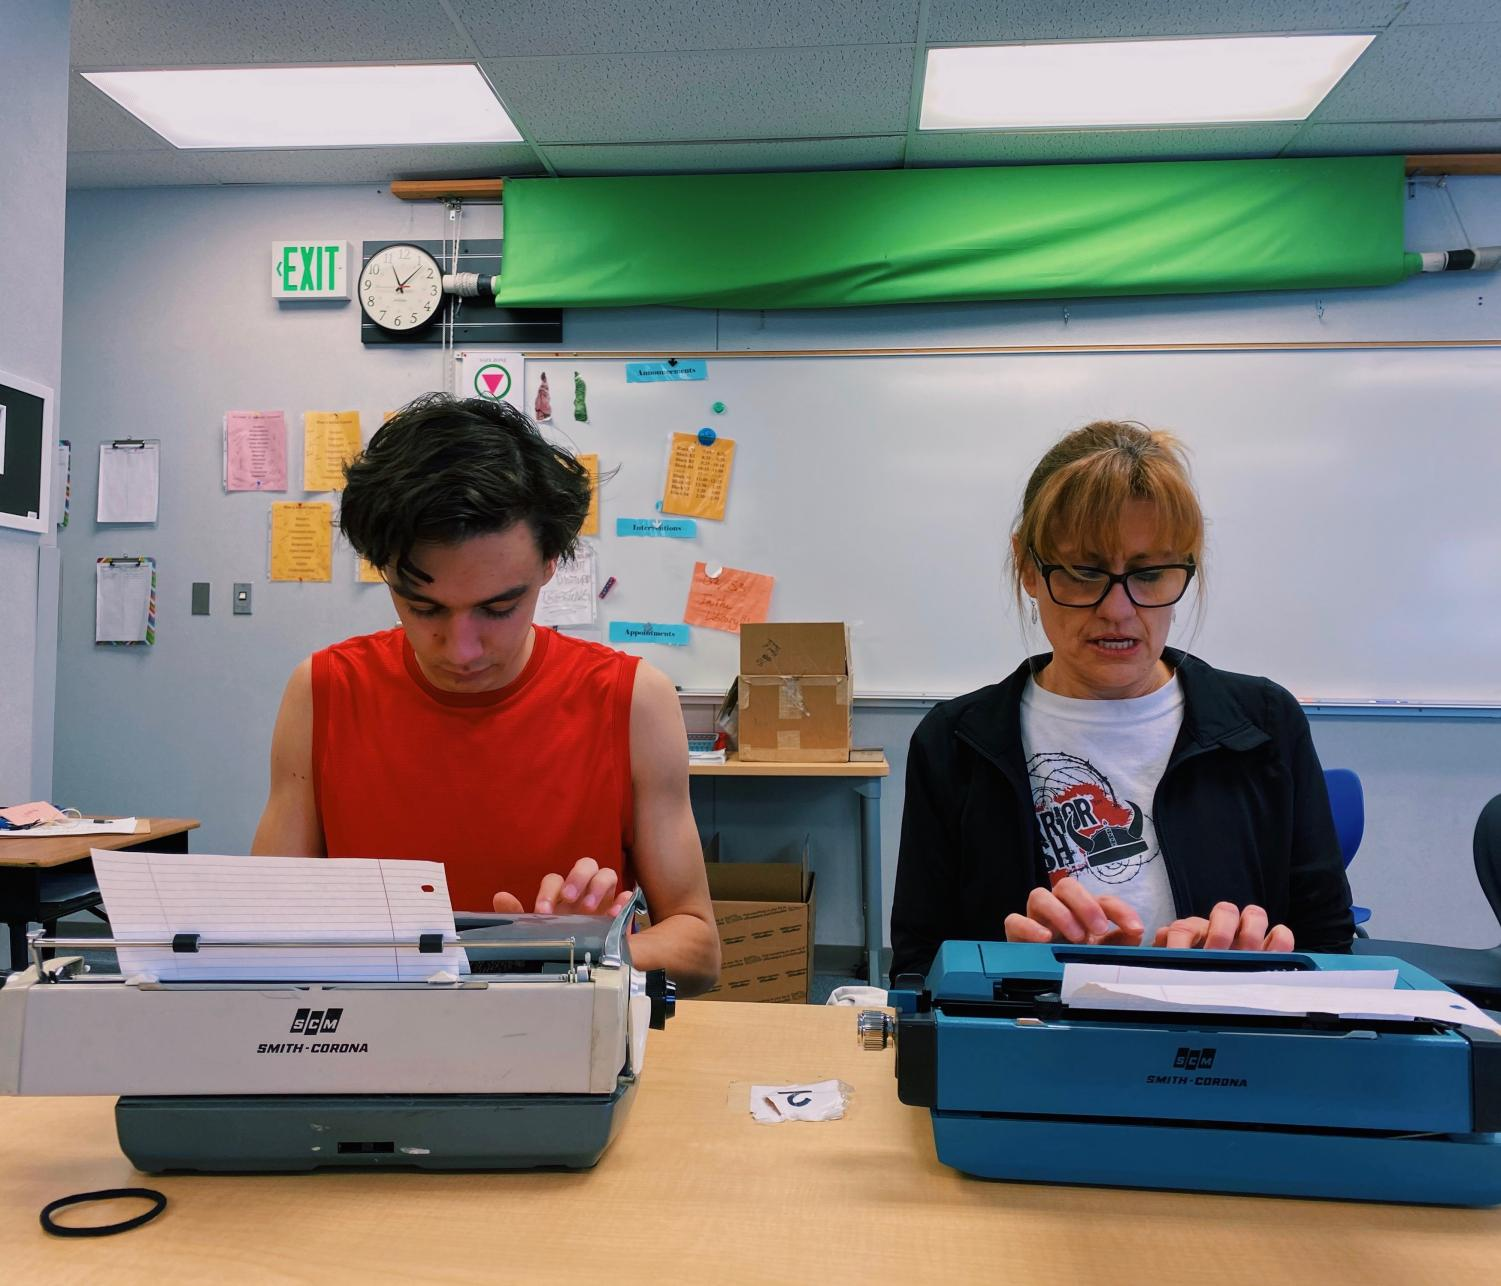 enior Aiden Chesmore and English teacher Mary Anderson spending journalism class on February 28th the old-fashioned way on their typewriters.